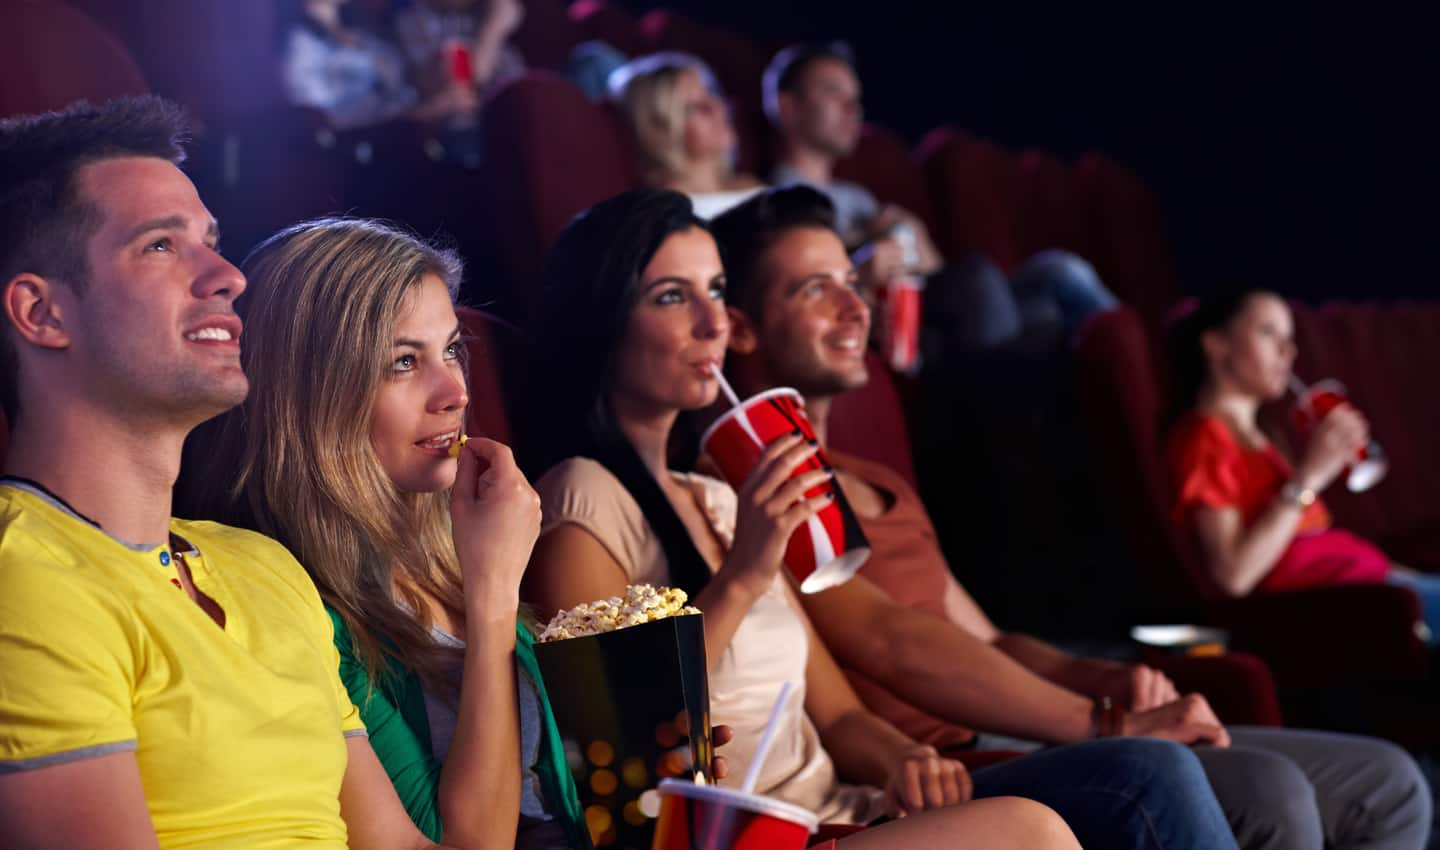 two couples enjoying a matinee showing